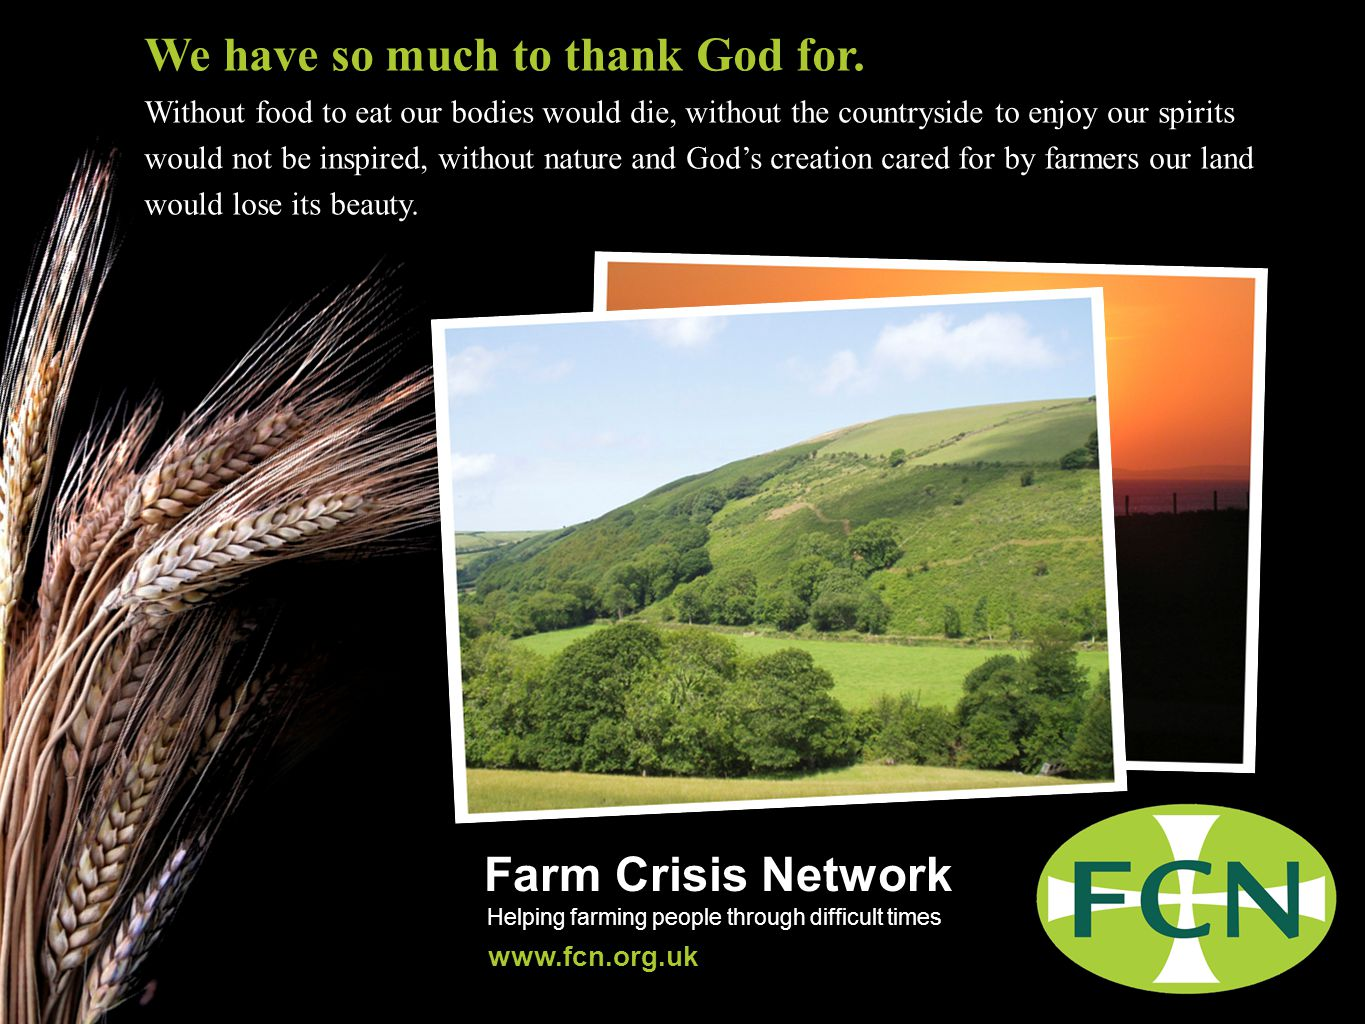 Farm Crisis Network Helping farming people through difficult times www.fcn.org.uk We have so much to thank God for.